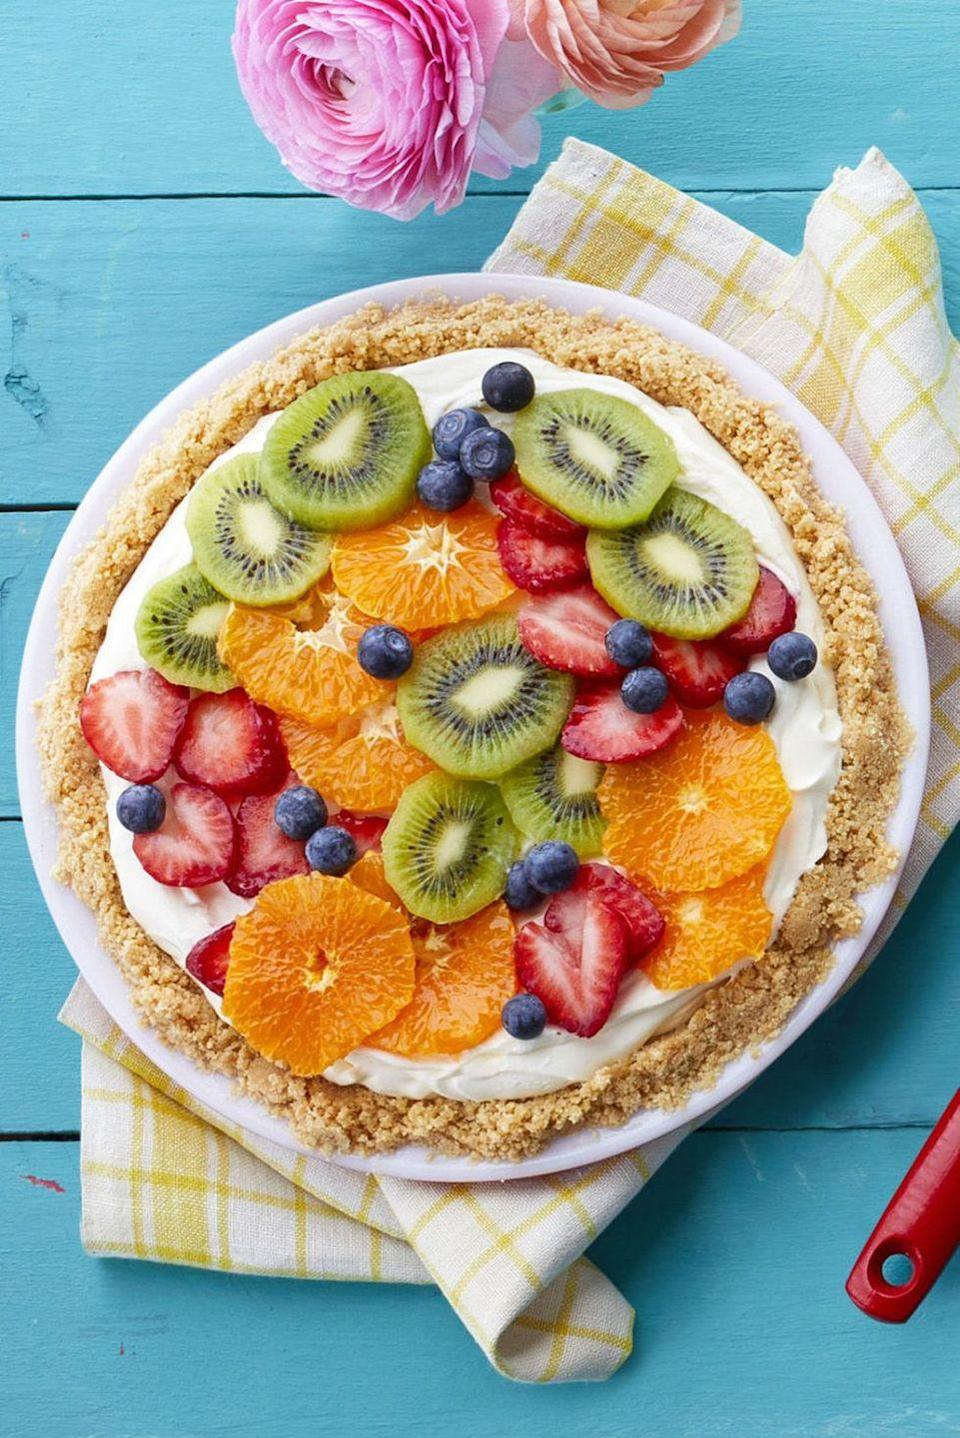 """<p>Vary the fruit according to your mood and what you have on hand. </p><p><em><a href=""""https://www.womansday.com/food-recipes/food-drinks/recipes/a58994/fresh-fruit-cheesecake-pie/"""" rel=""""nofollow noopener"""" target=""""_blank"""" data-ylk=""""slk:Get the recipe from Woman's Day »"""" class=""""link rapid-noclick-resp"""">Get the recipe from Woman's Day »</a></em></p>"""